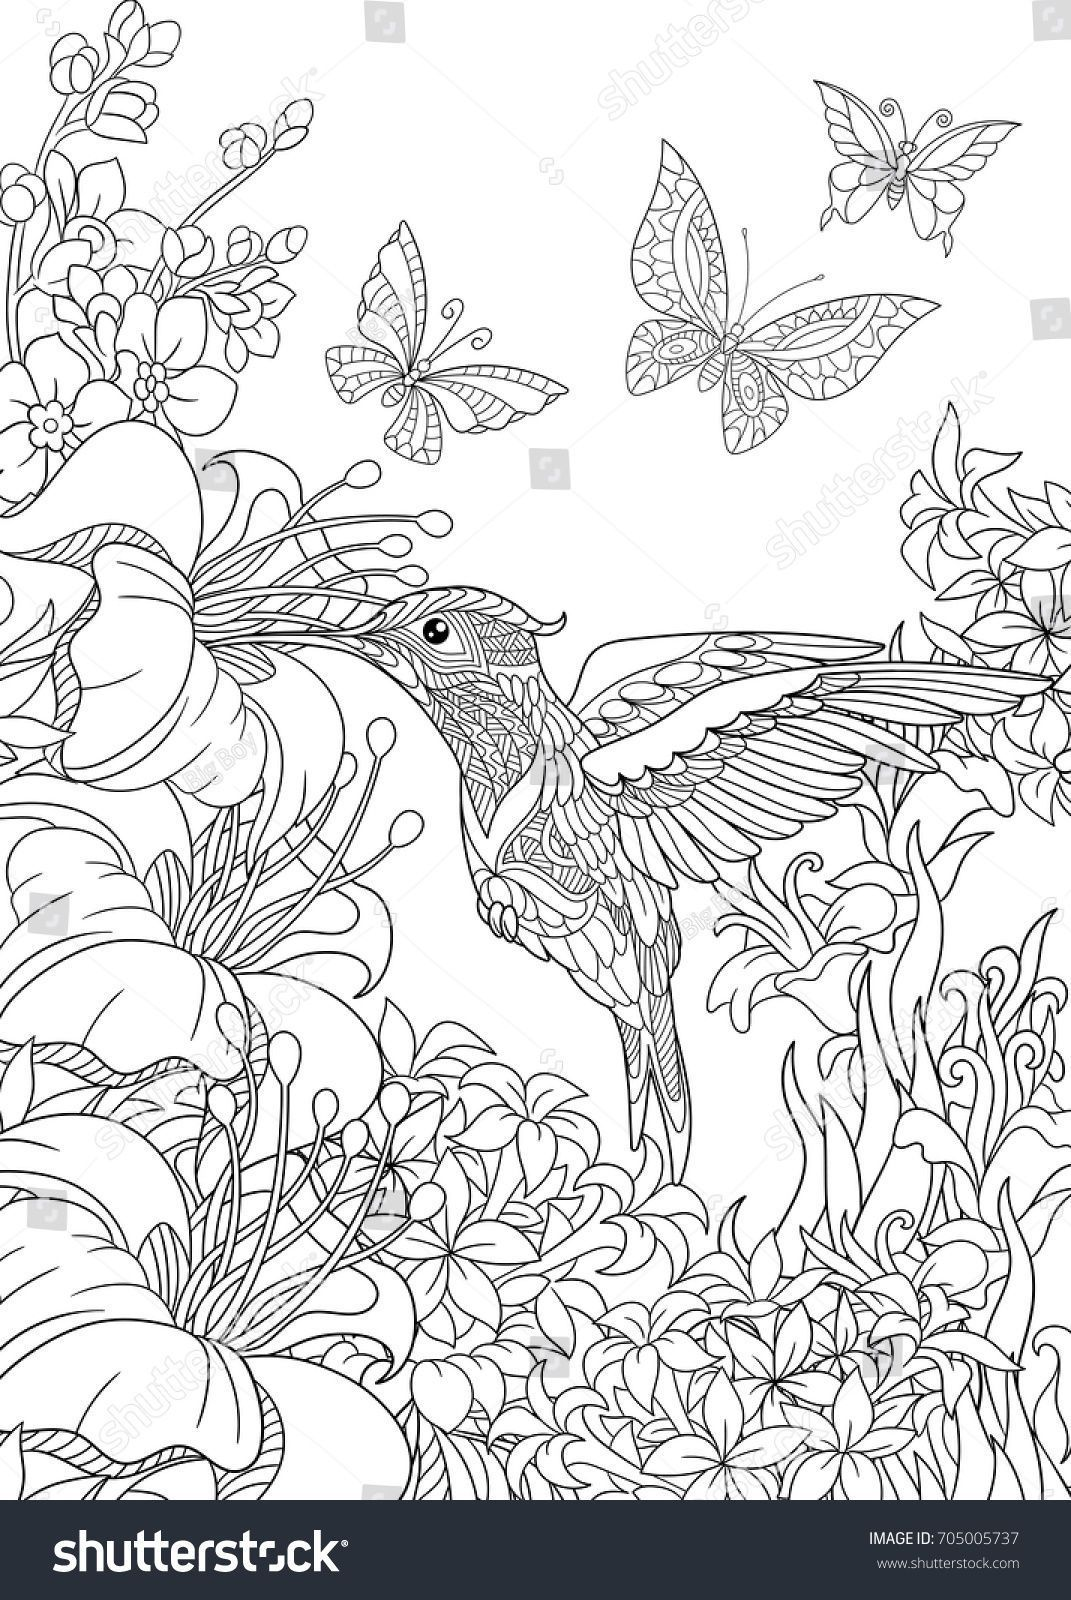 Coloring Page Of Hummingbird Butterflies And Hibiscus Flowers Freehand Sketch Drawing For Adu Butterfly Coloring Page Bird Coloring Pages Hummingbird Drawing [ 1600 x 1071 Pixel ]